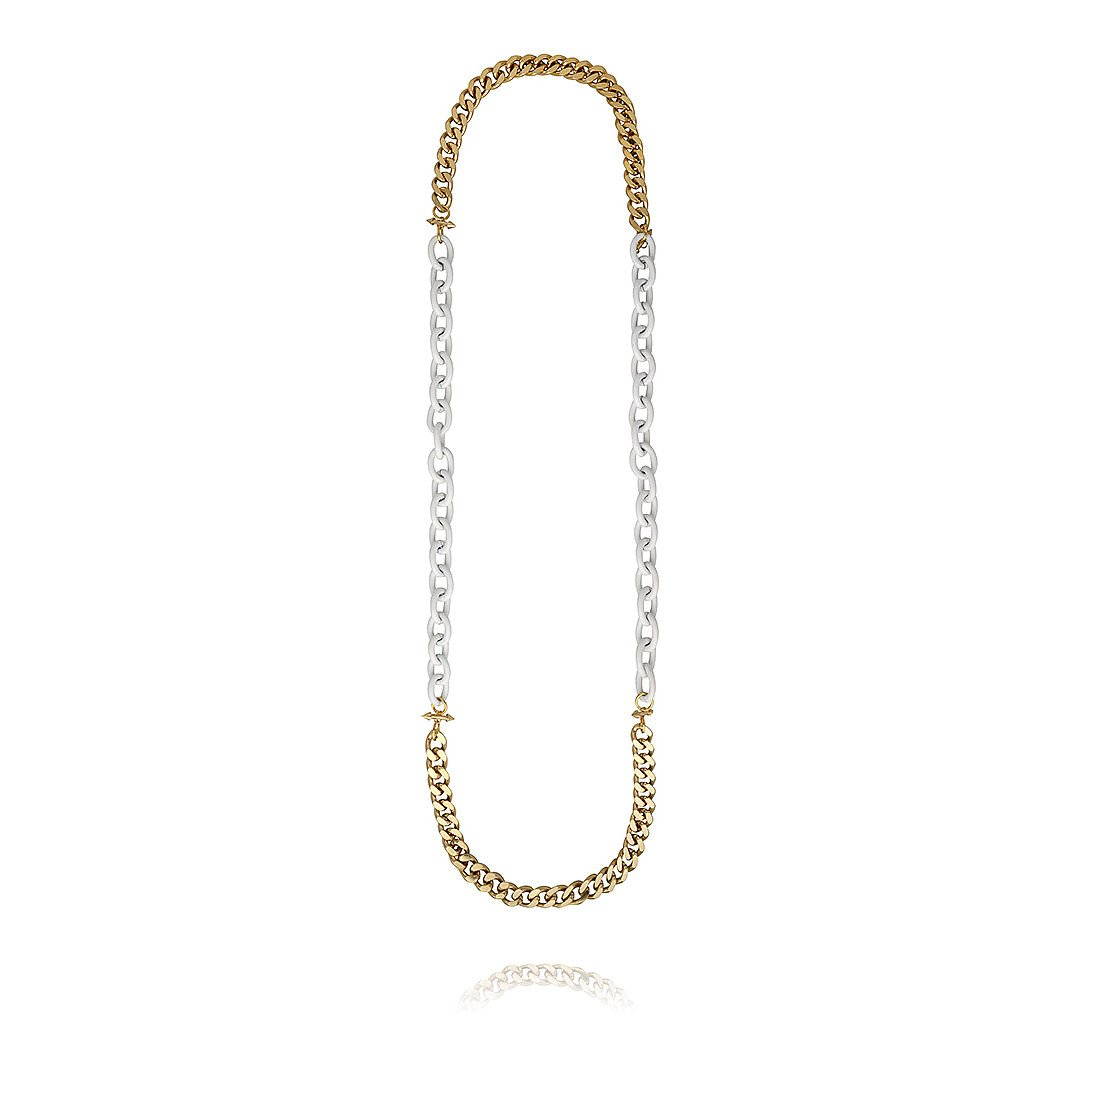 Fenton Lacquered Chain Necklace